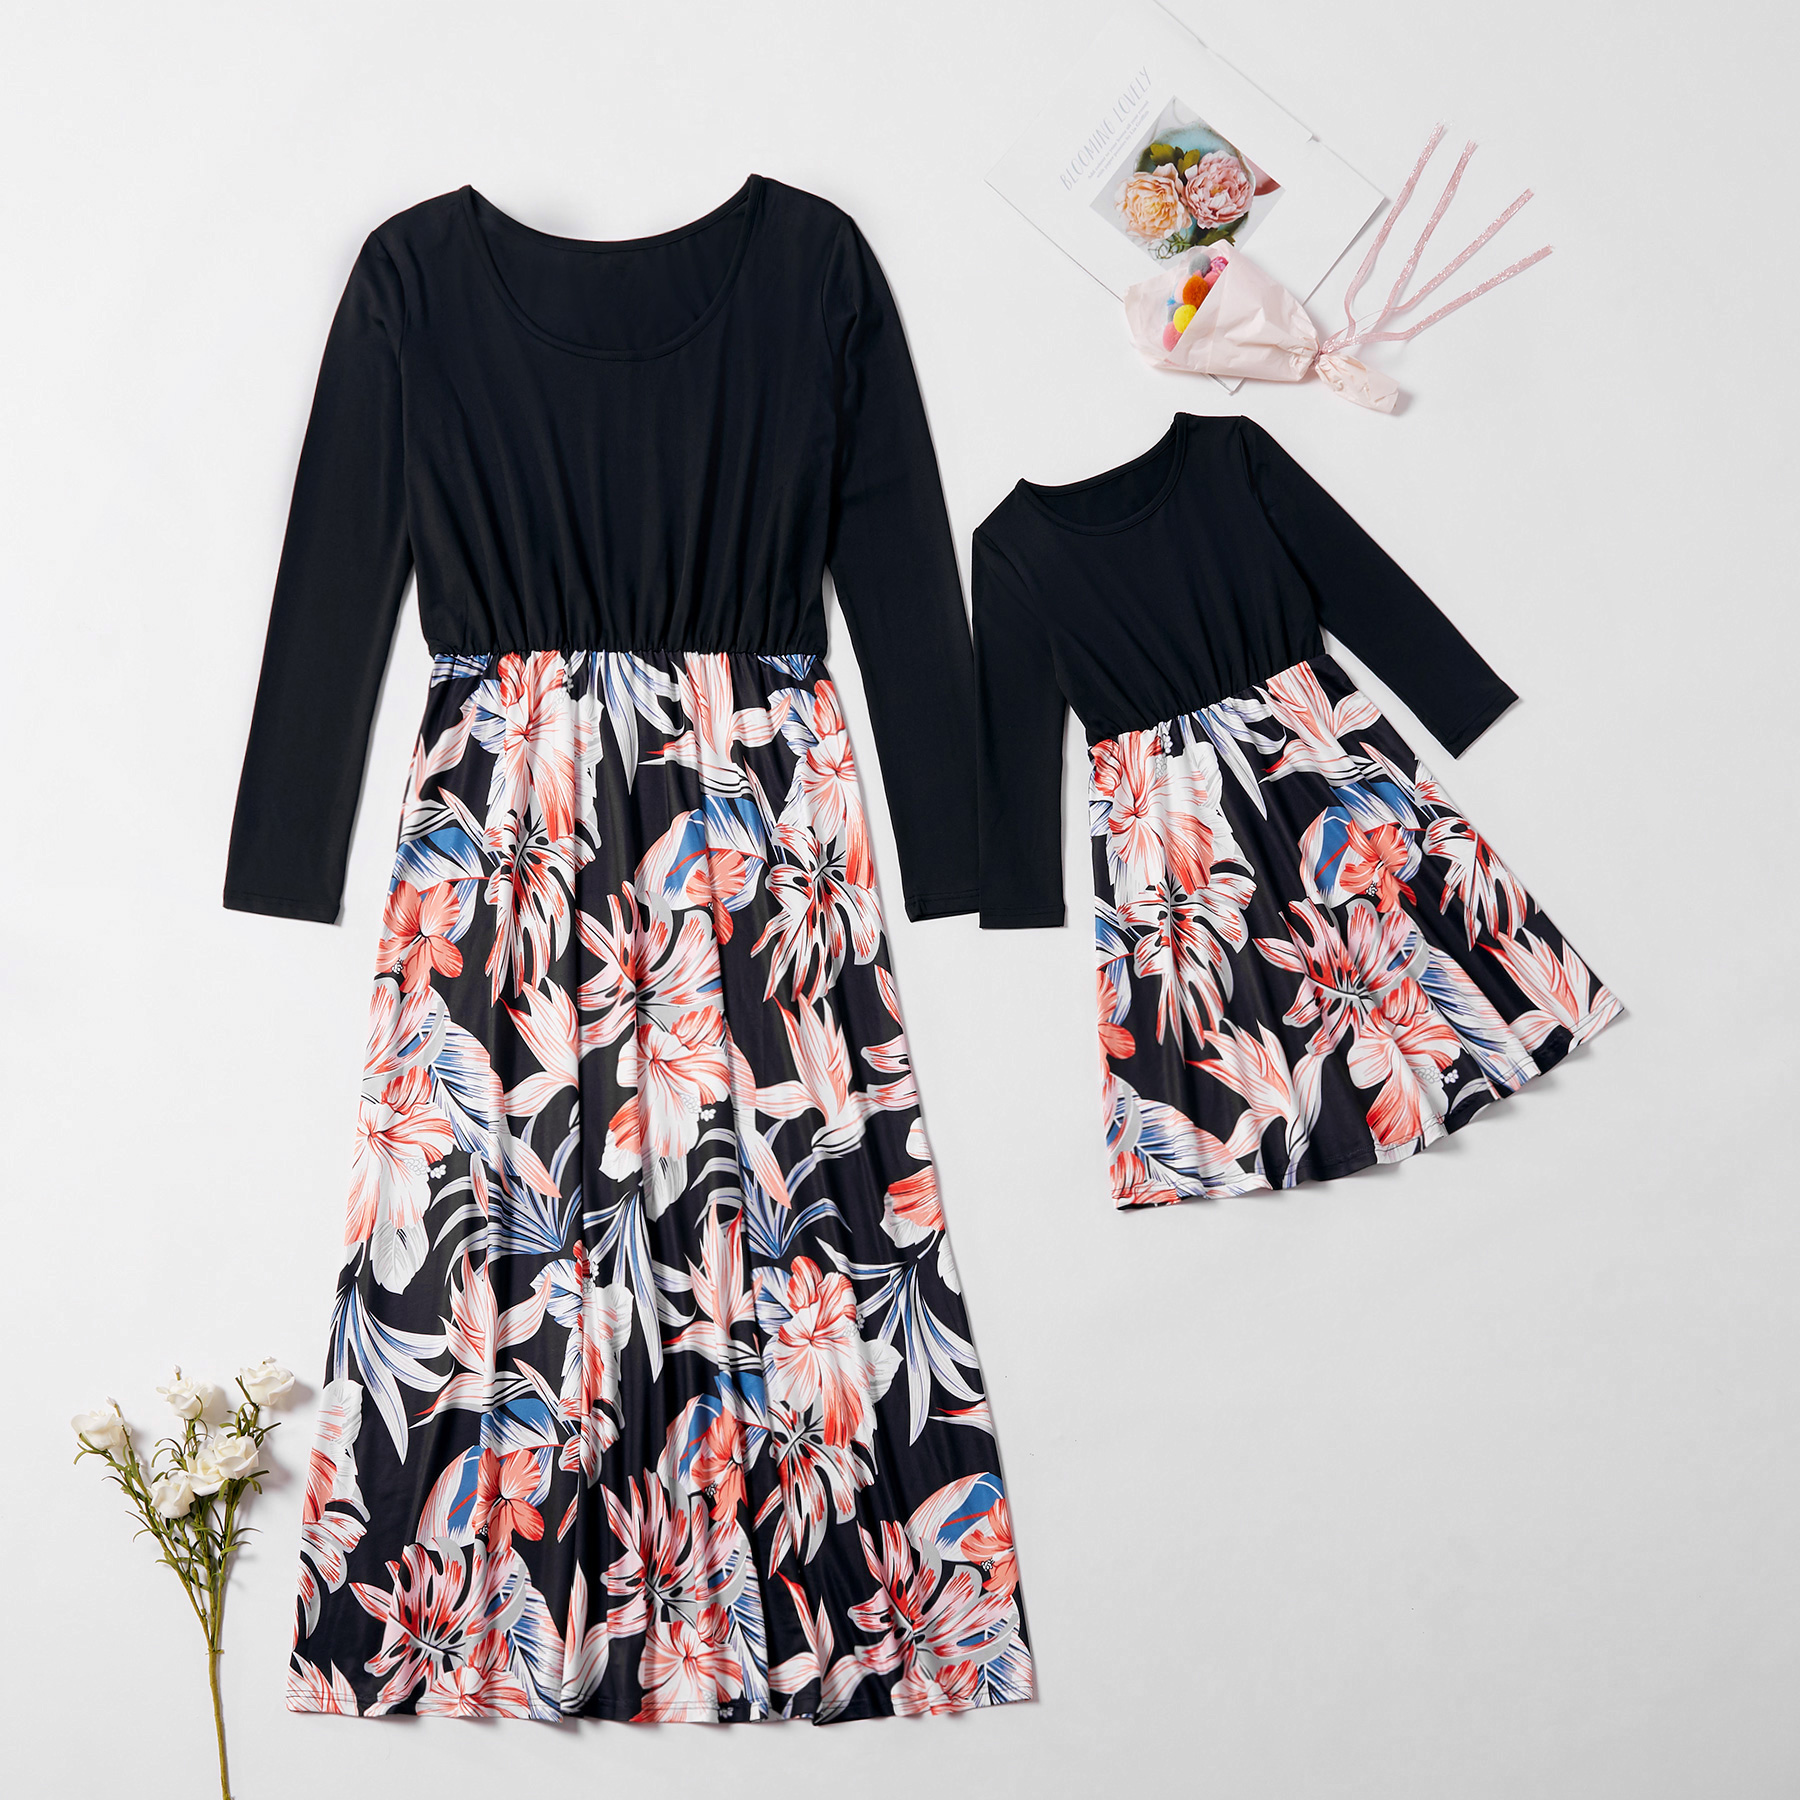 Full Sleeve Mother Daughter Dresses Spring Mommy And Me Clothes Family Matching Outfits Look Mom Mum And Baby Women Girls Dress